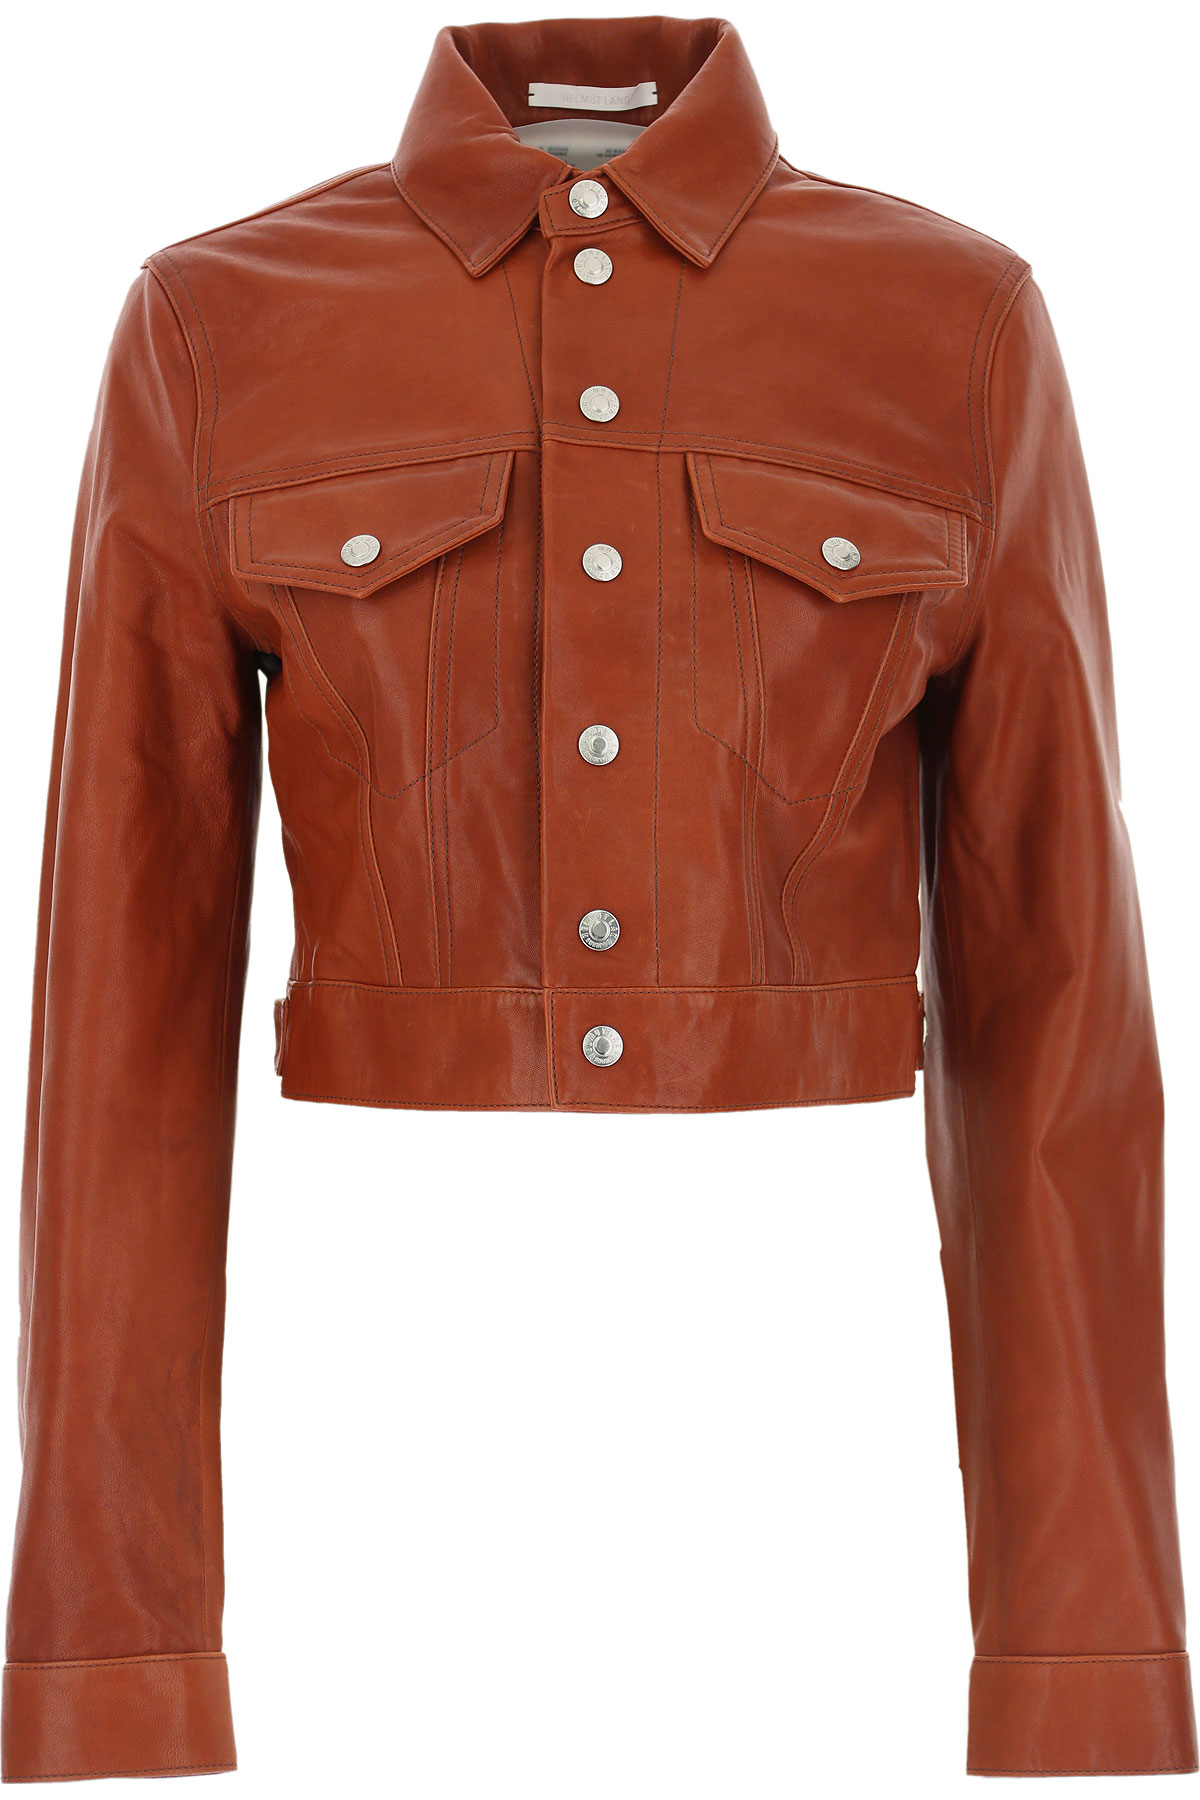 Helmut Lang Leather Jacket for Women On Sale, Red Tobacco, Leather, 2019, 4 6